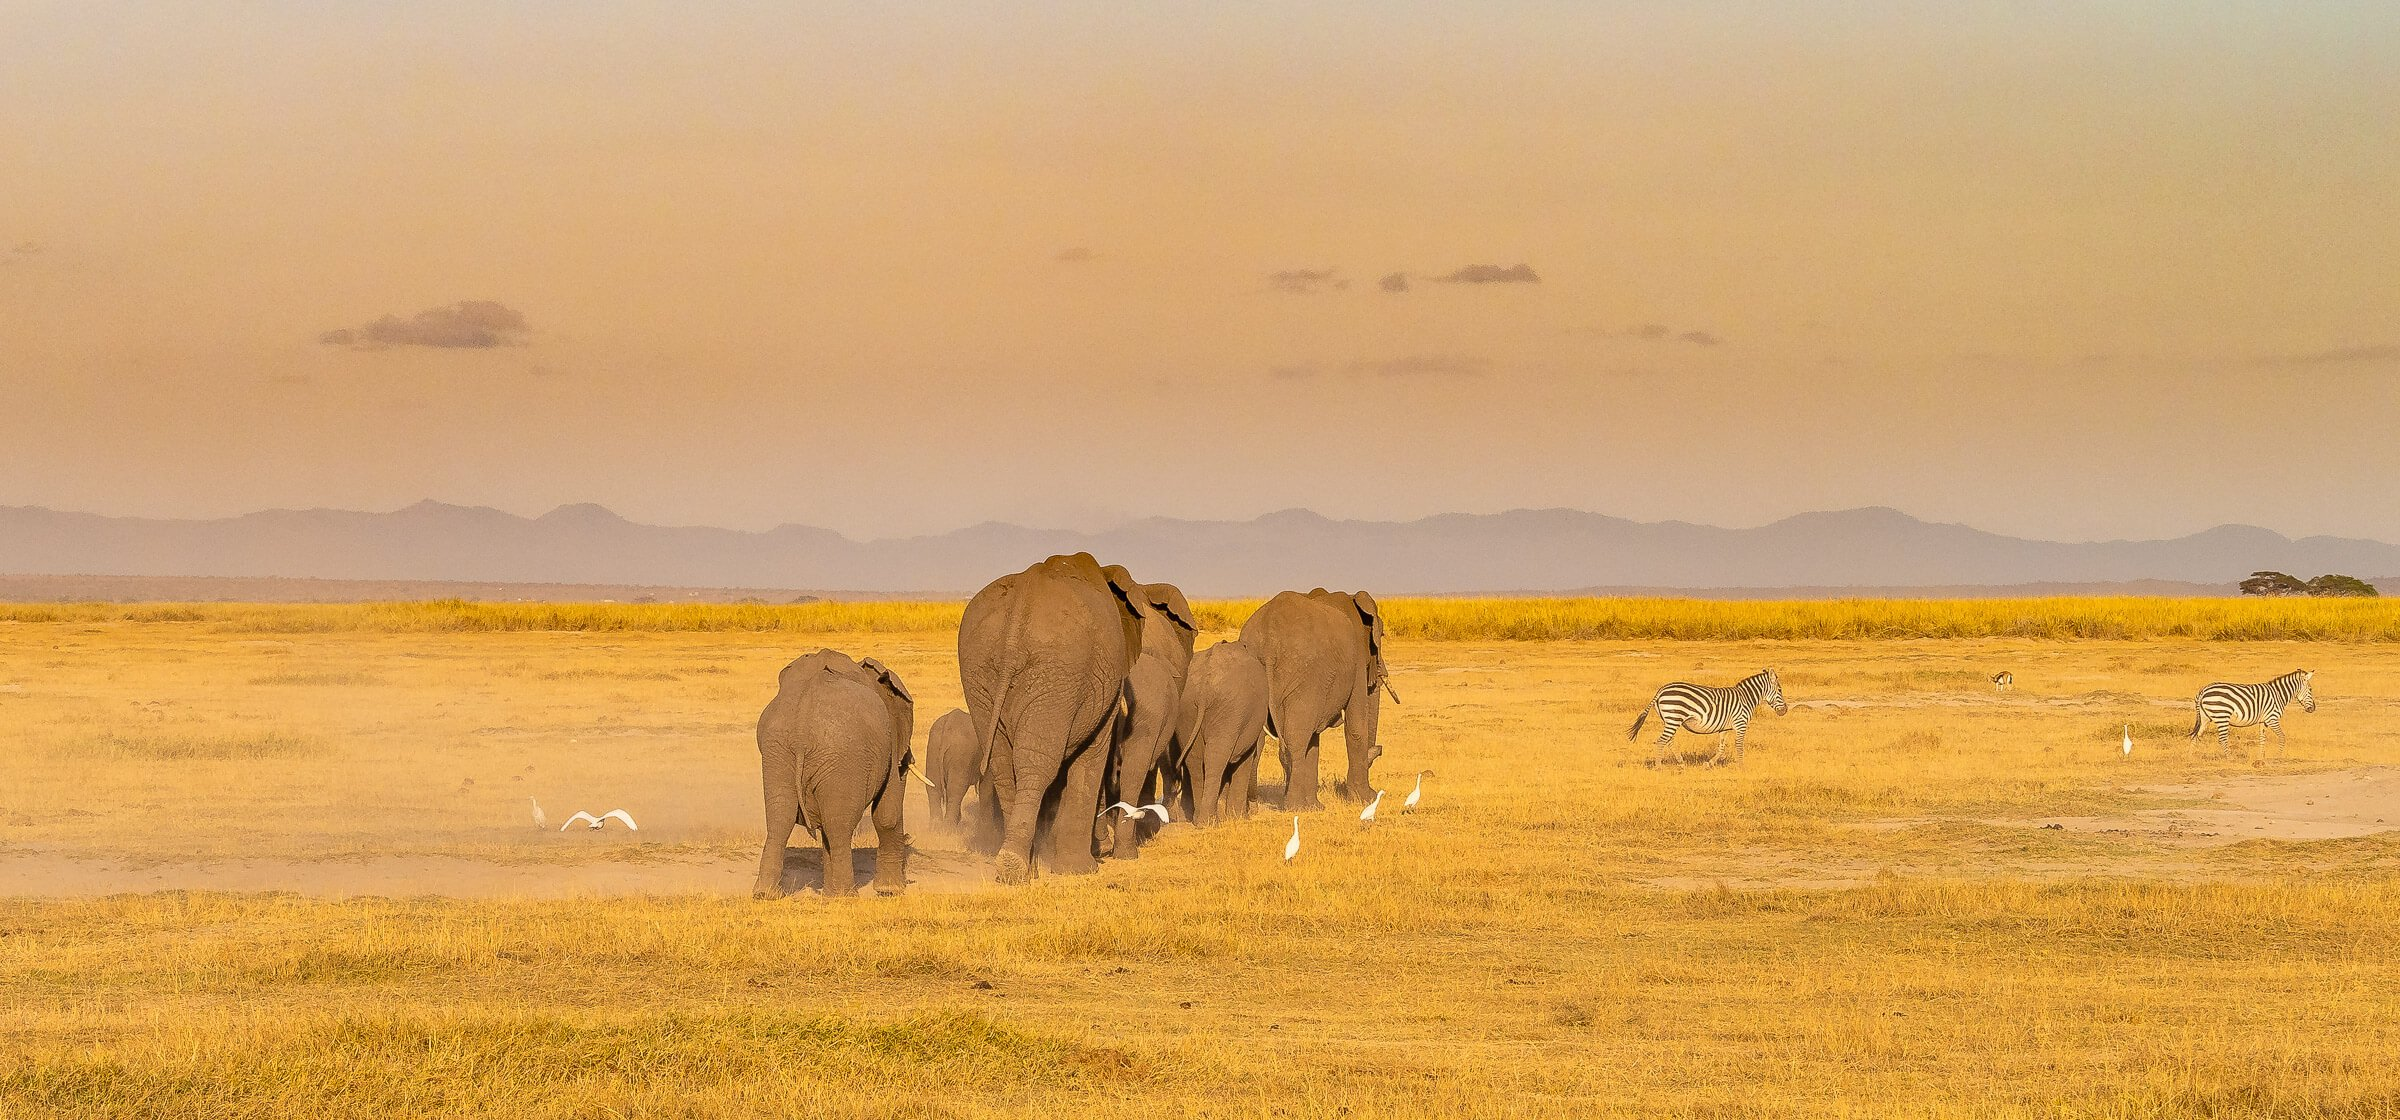 Elephants walking on grassland into the distance